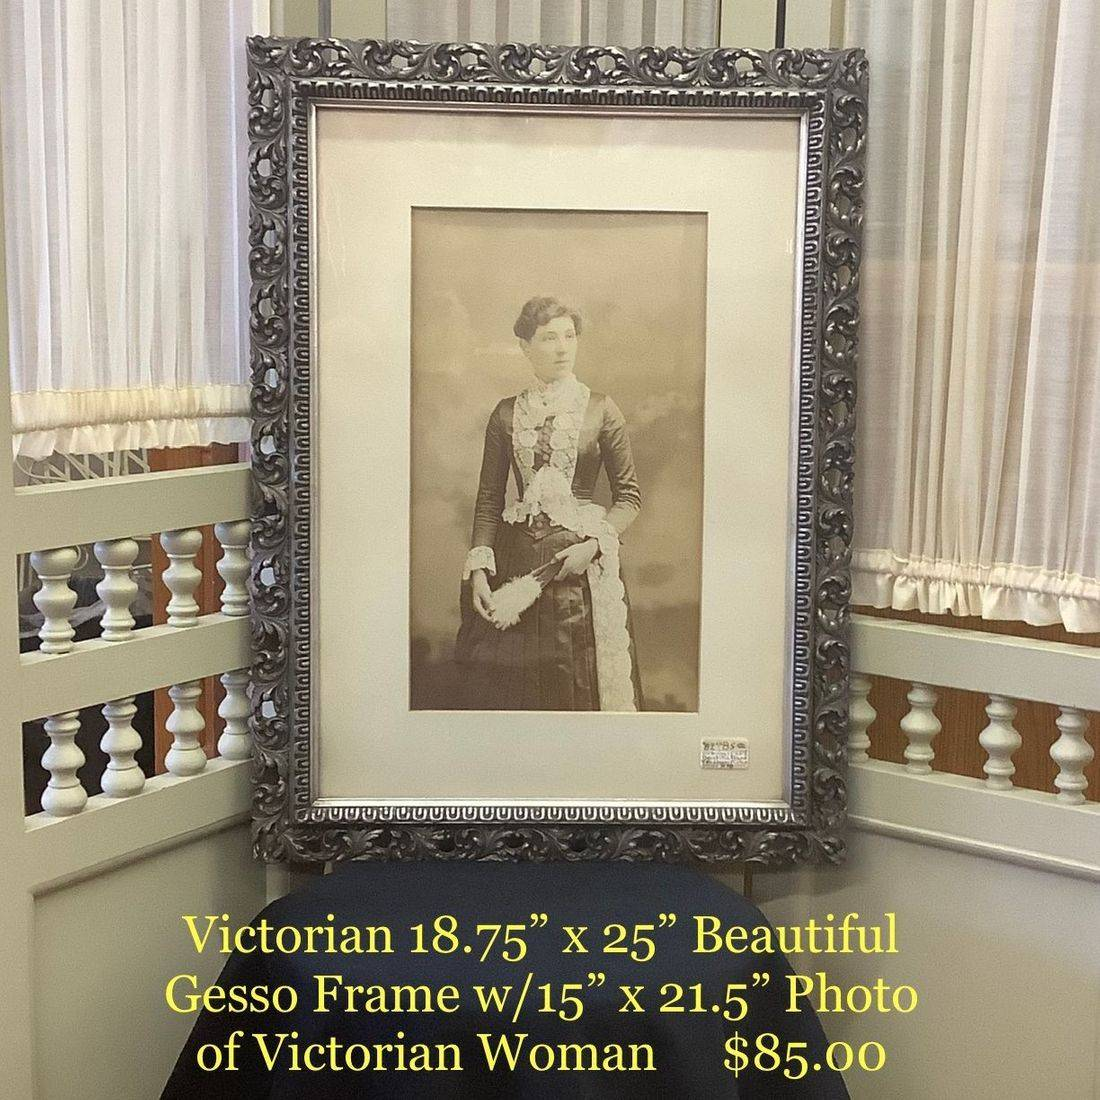 """Victorian 18.75"""" x 25"""" Gesso Frame w/15"""" x 21.5"""" Photo of Victorian Woman  $85.00"""